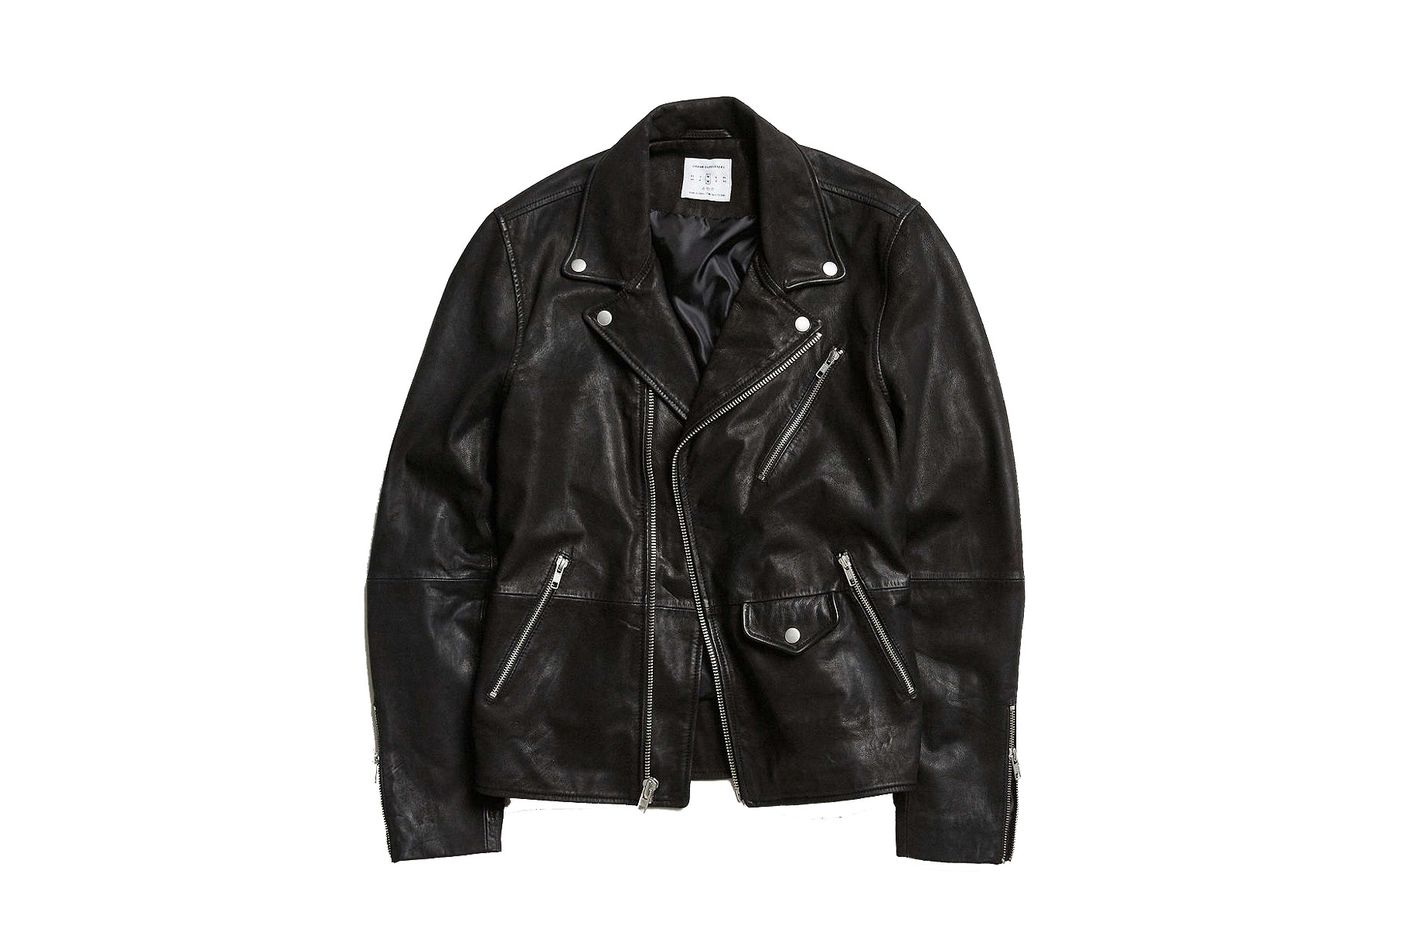 7 Best Leather Jackets for Men